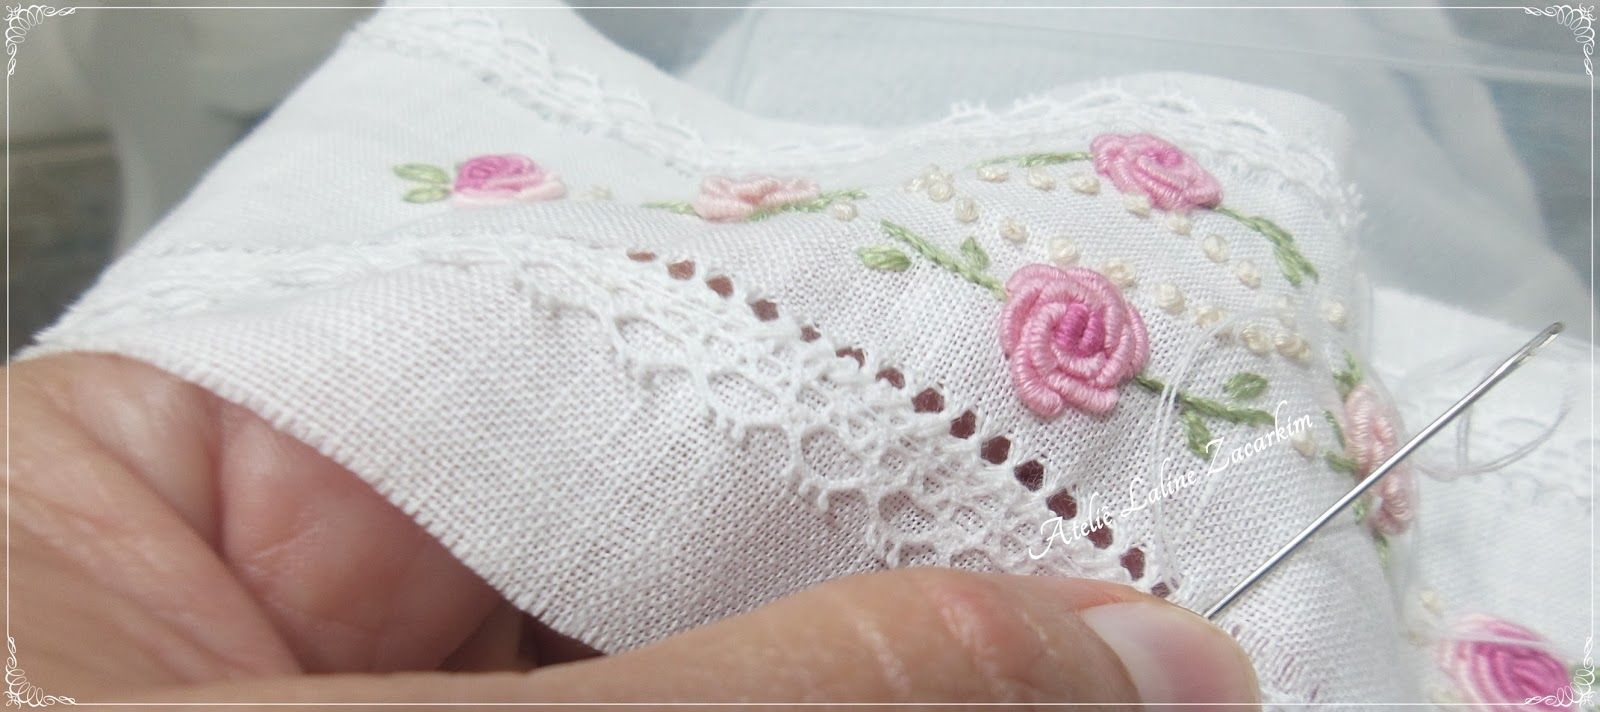 Ateliê Laline Zacarkim | Sewing | Pinterest | Embroidery, Smocking y ...